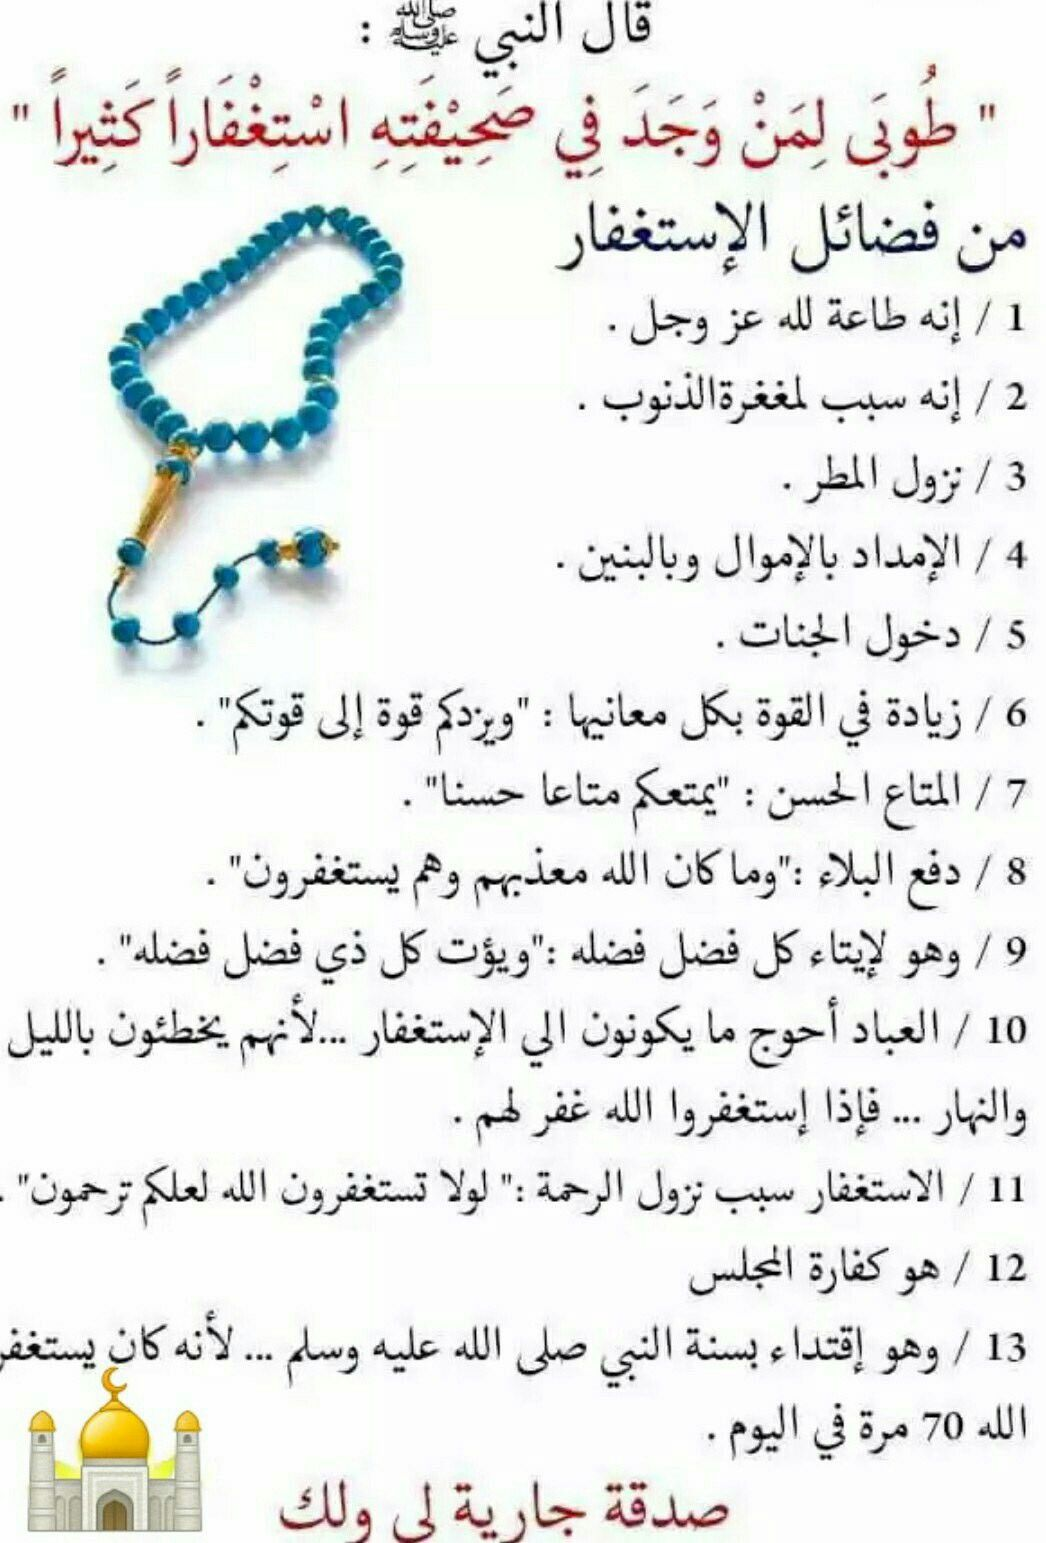 Pin By Jouda Zaoun On إسلاميات Islamic Love Quotes Islamic Phrases Islam Facts